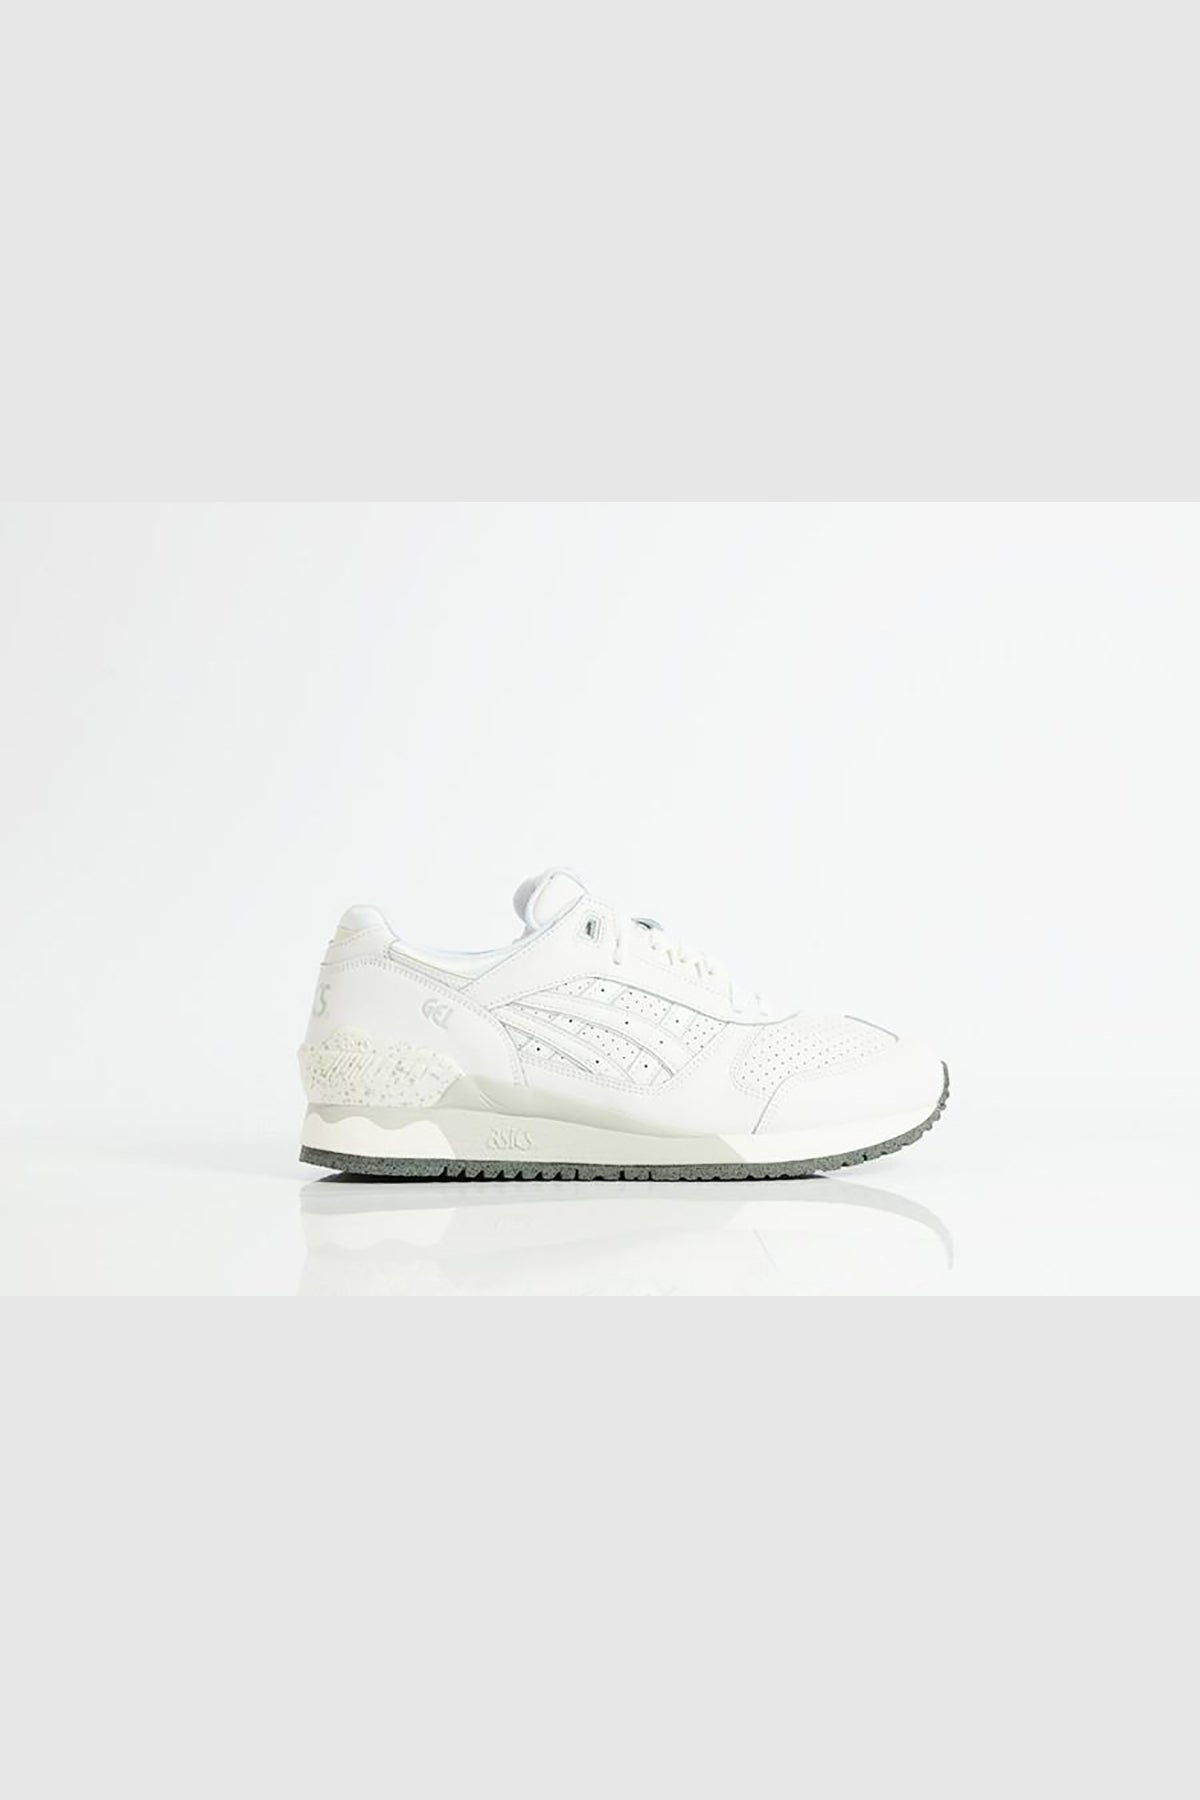 Asics - Fresh Pack Gel-Lyte Rescpector (White/White)